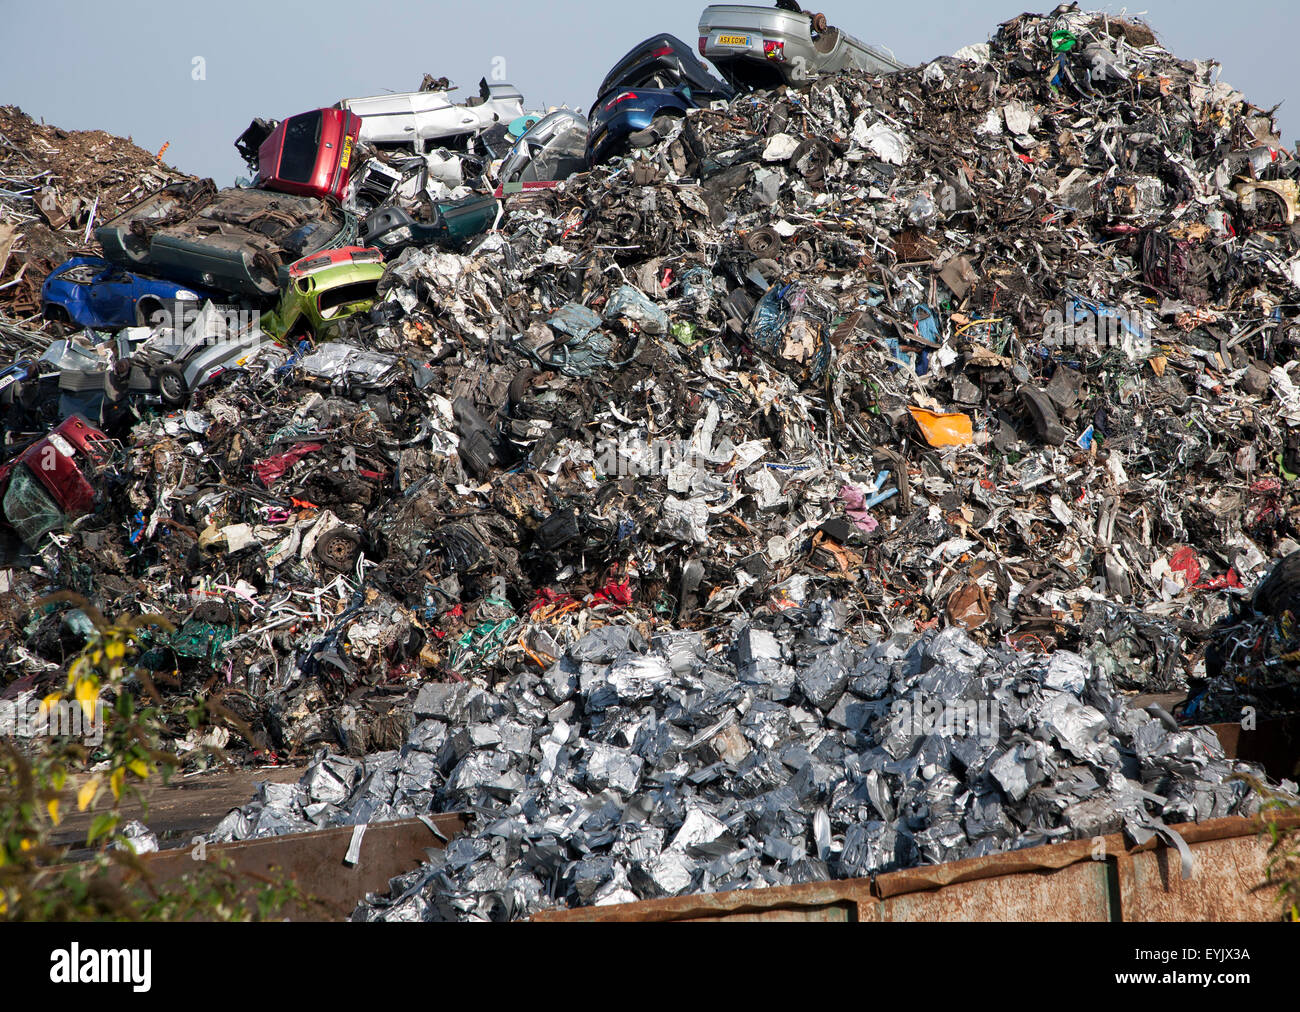 Scrap metal recycling processed metals, EMR company, Swindon, England, UK Stock Photo